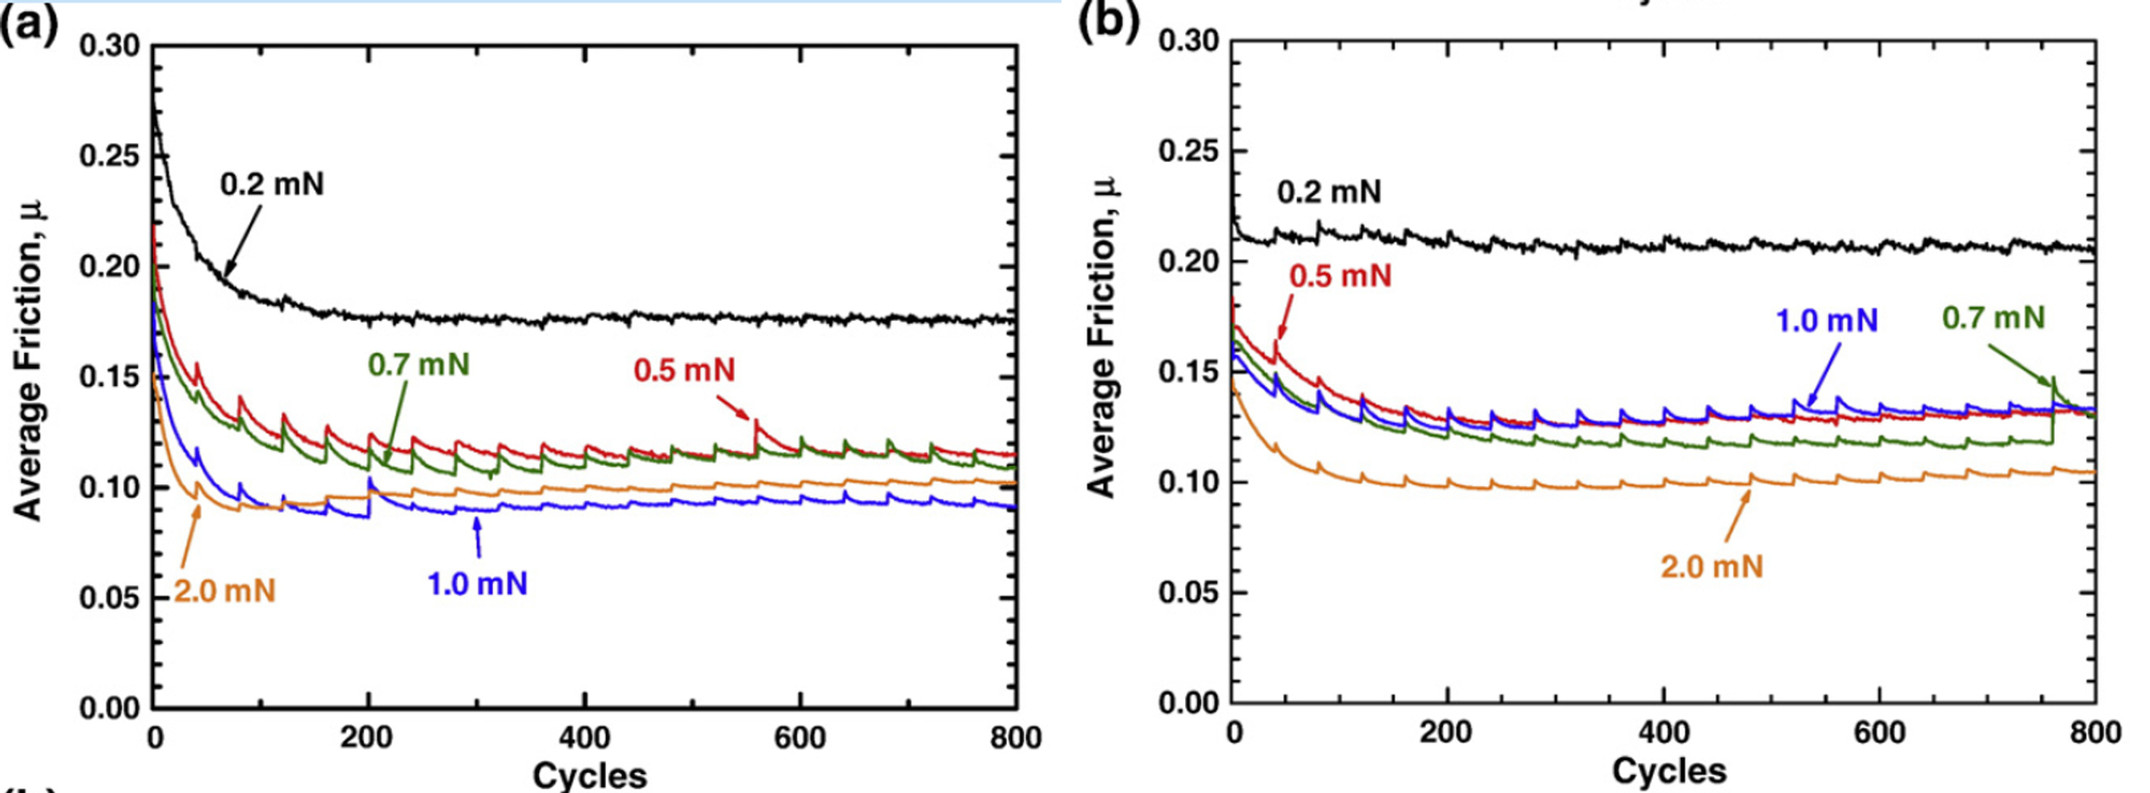 Average CoF versus cycles for the MoS2 coating with 32 at.% Au (a) and 84% Au (b).